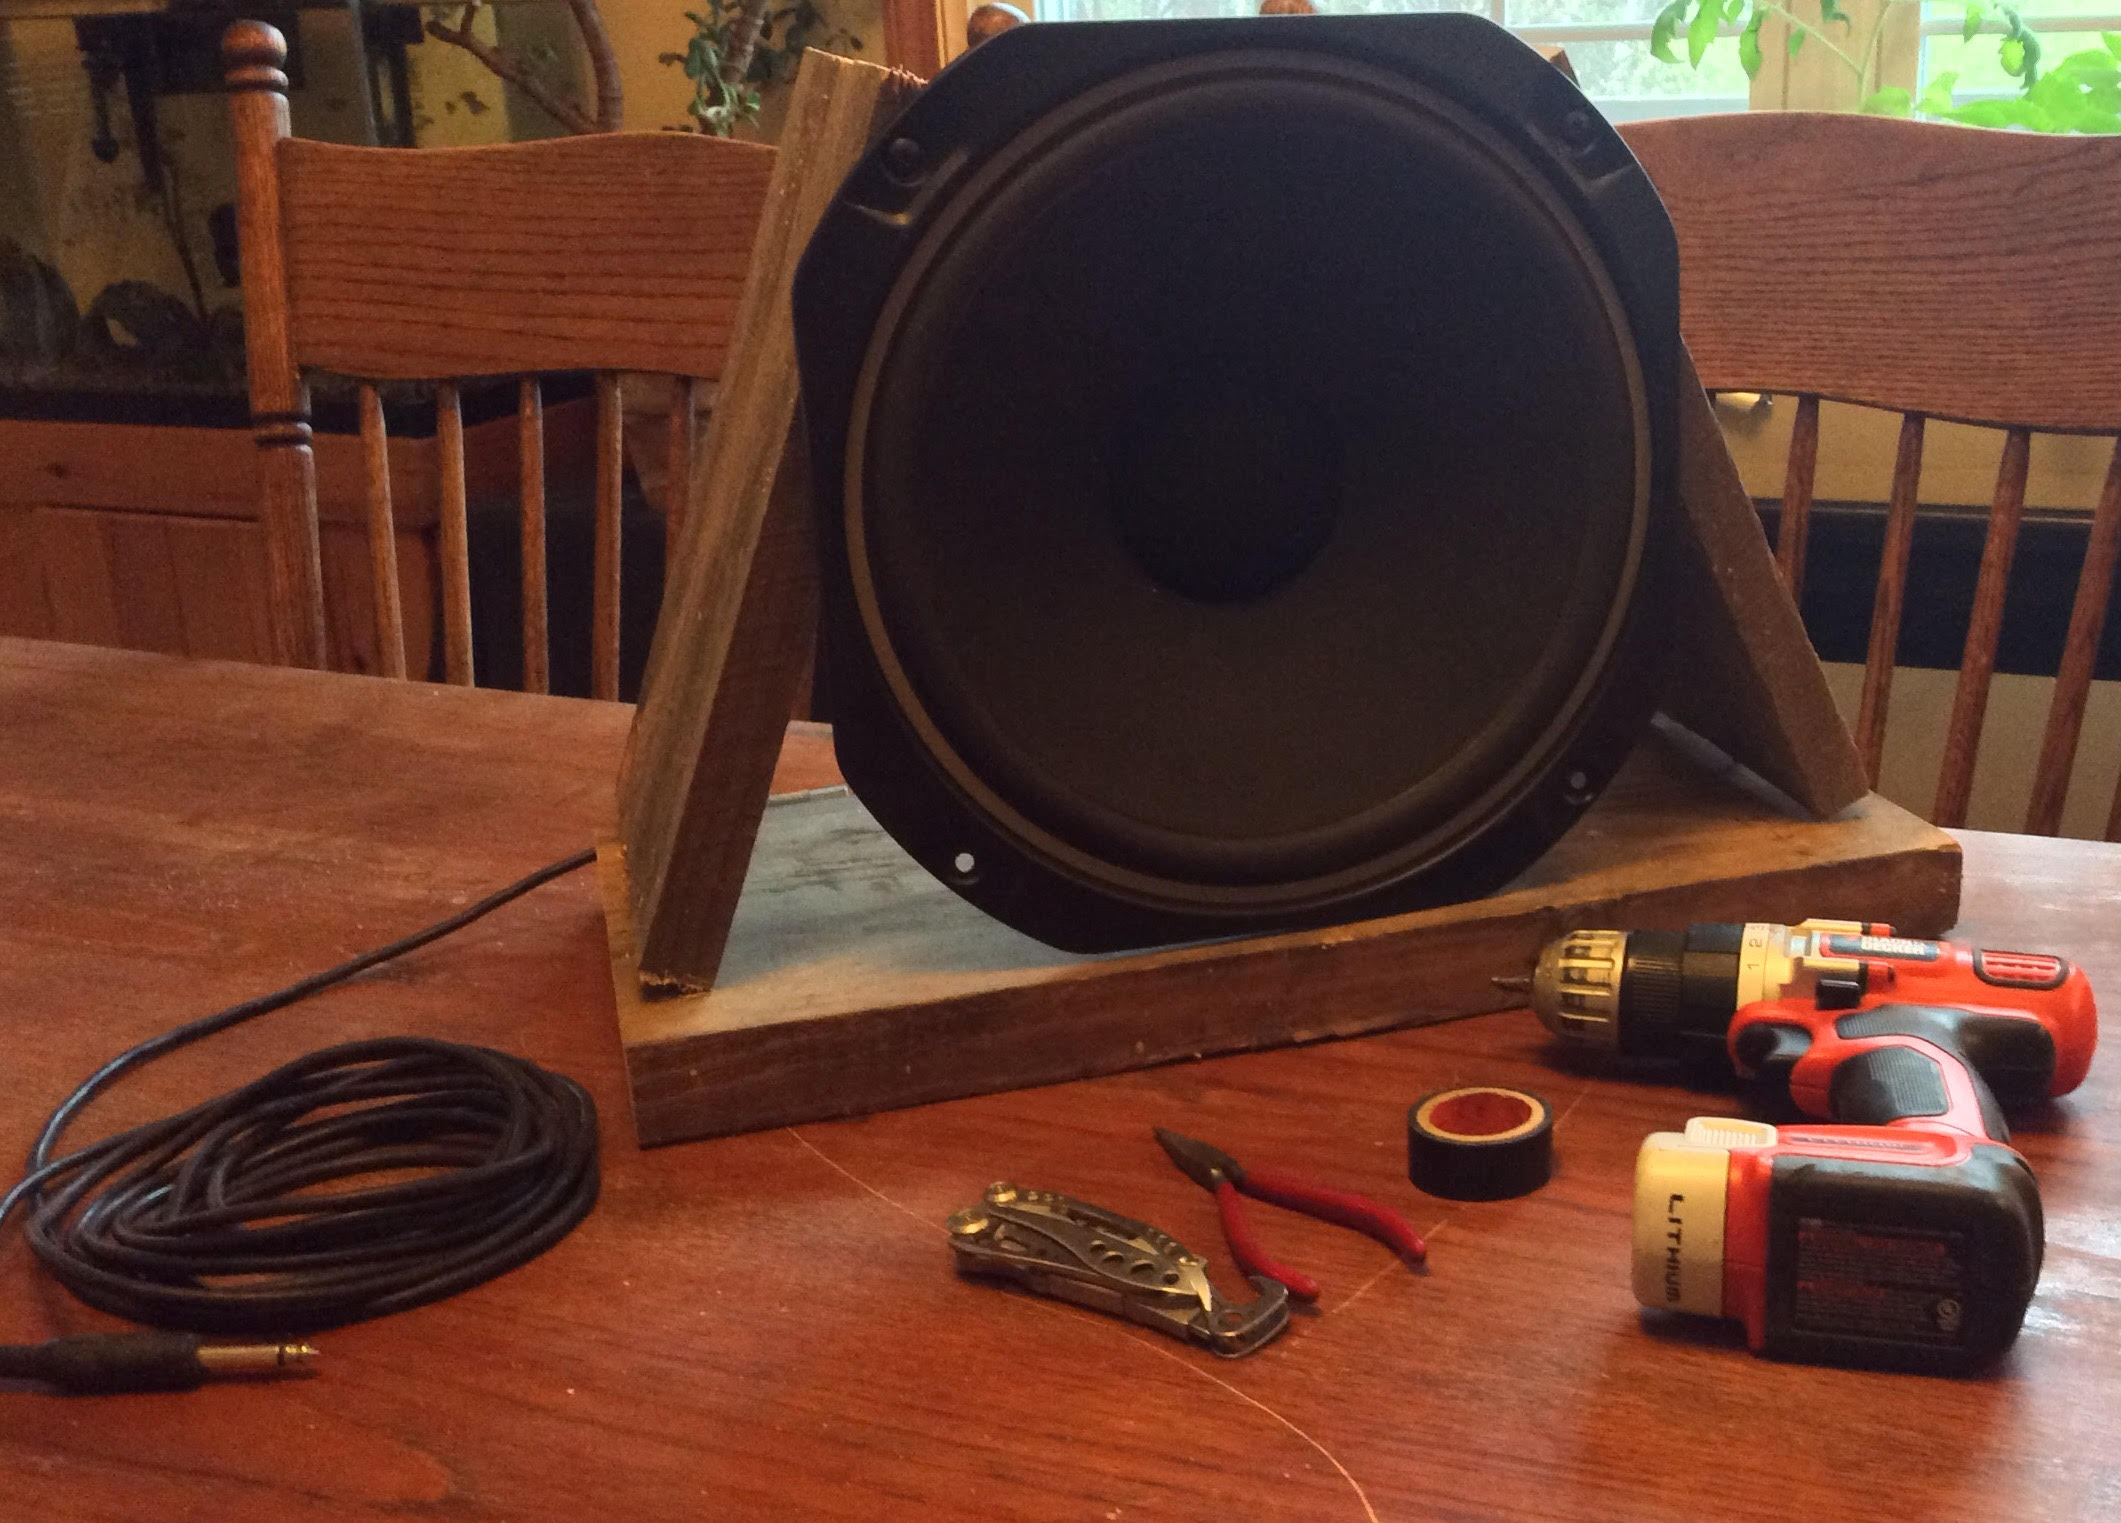 Easy Studio Hack How to Make a DIY Microphone Using an Old Speaker